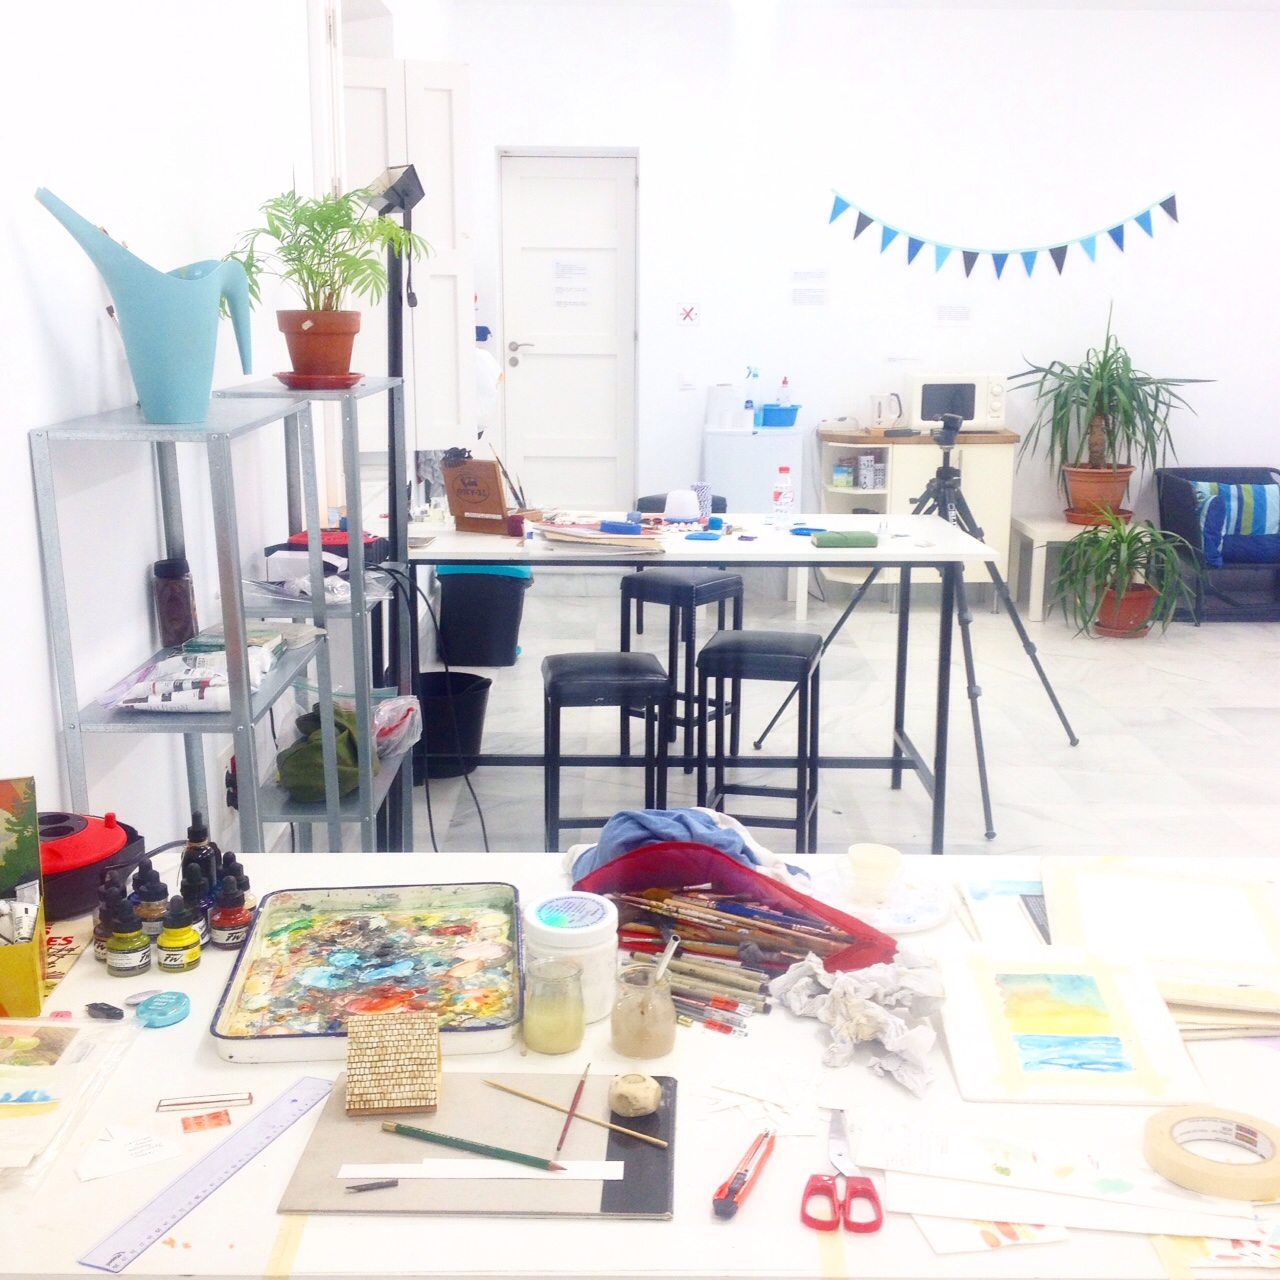 My workspace in the art studio.